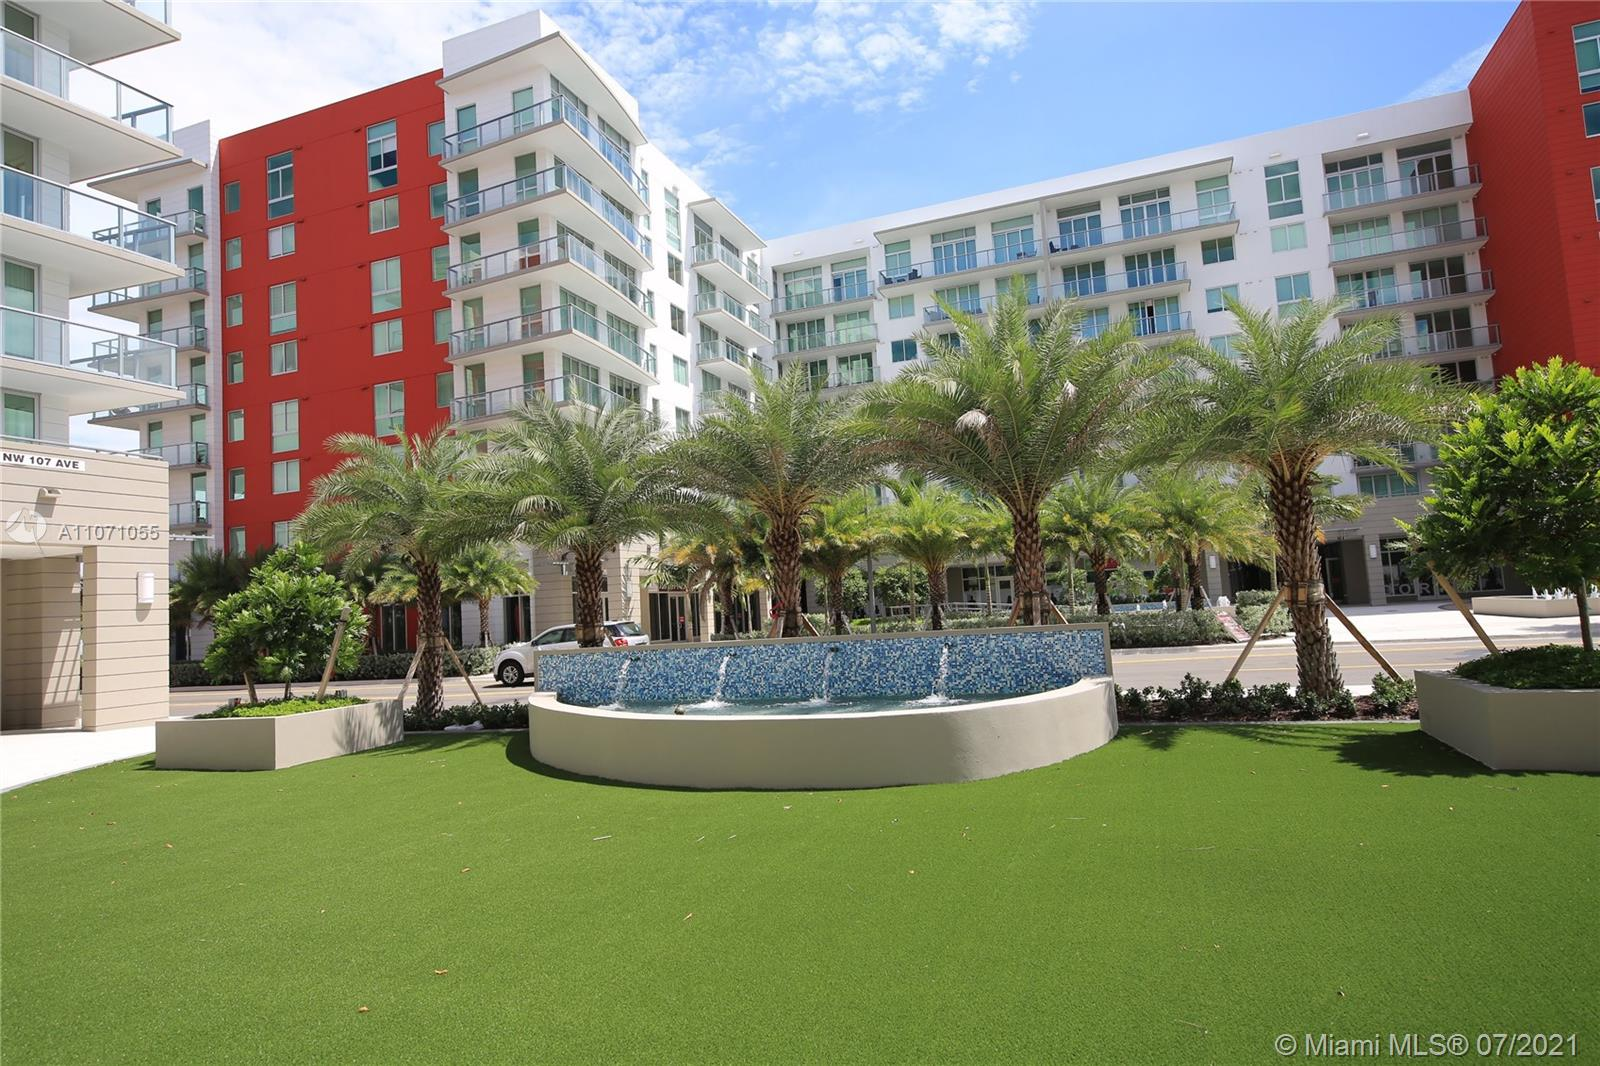 Midtown Doral - Building 4 #217 - 7875 NW 107th Ave #217, Doral, FL 33178